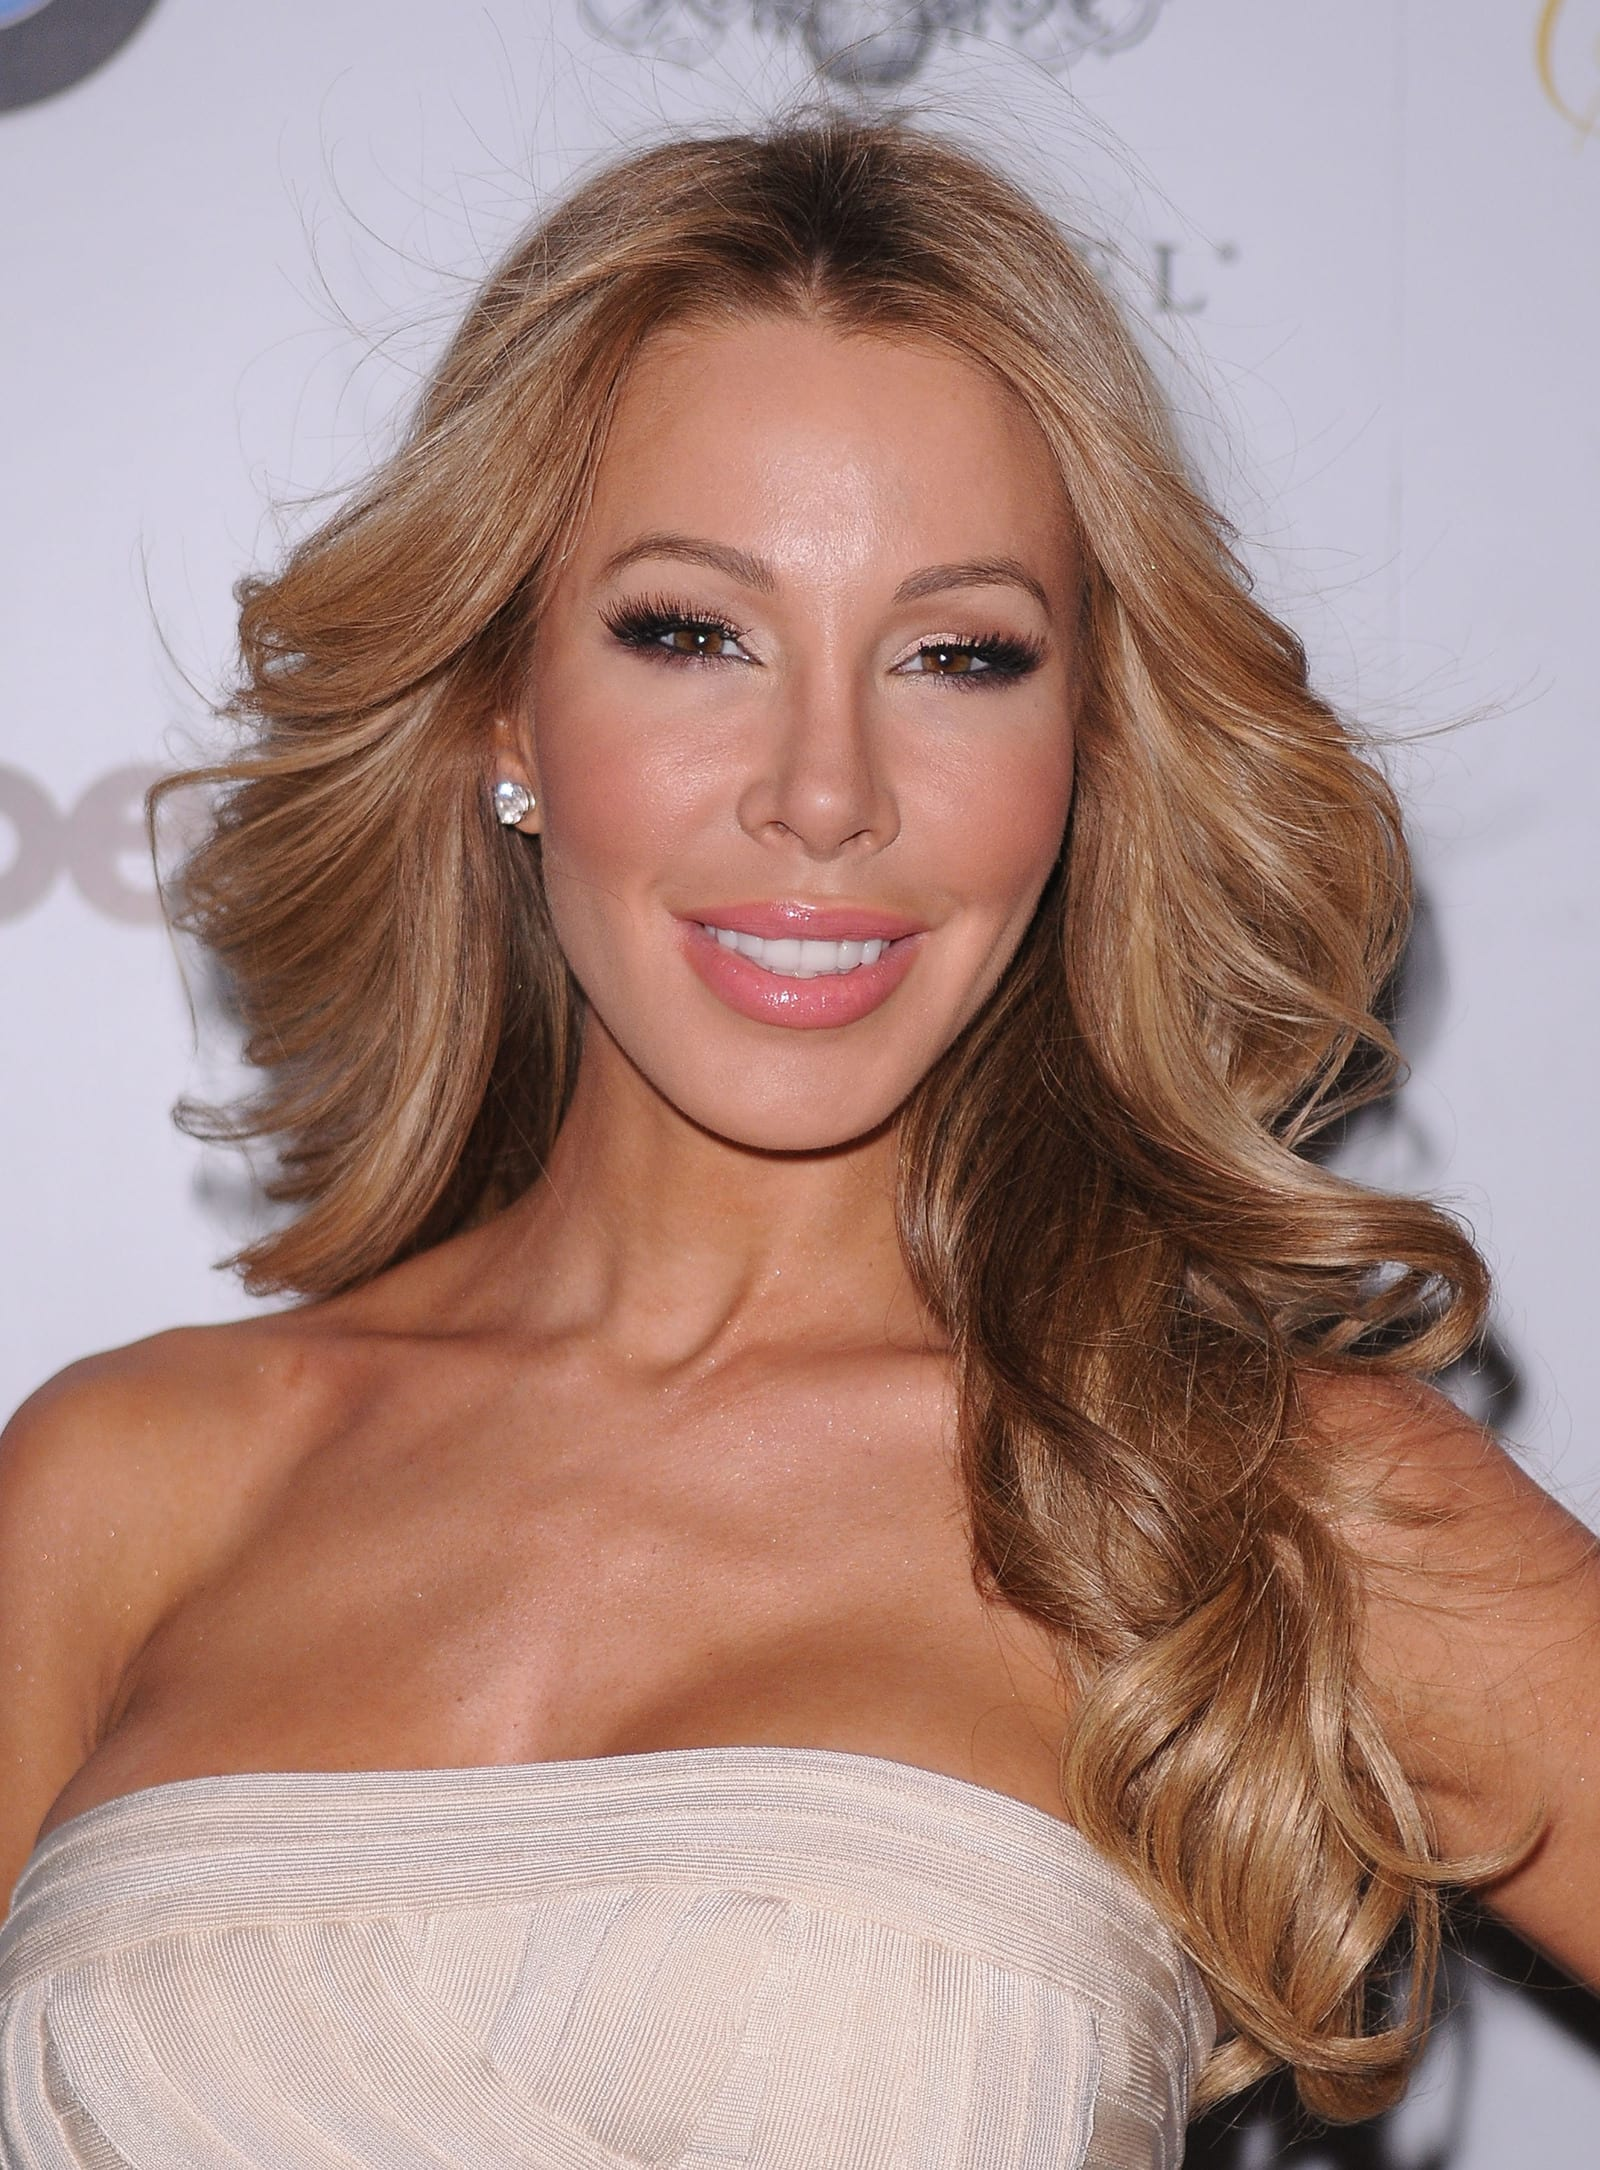 Cleavage Lisa Hochstein nude (78 photos), Ass, Hot, Instagram, cleavage 2018